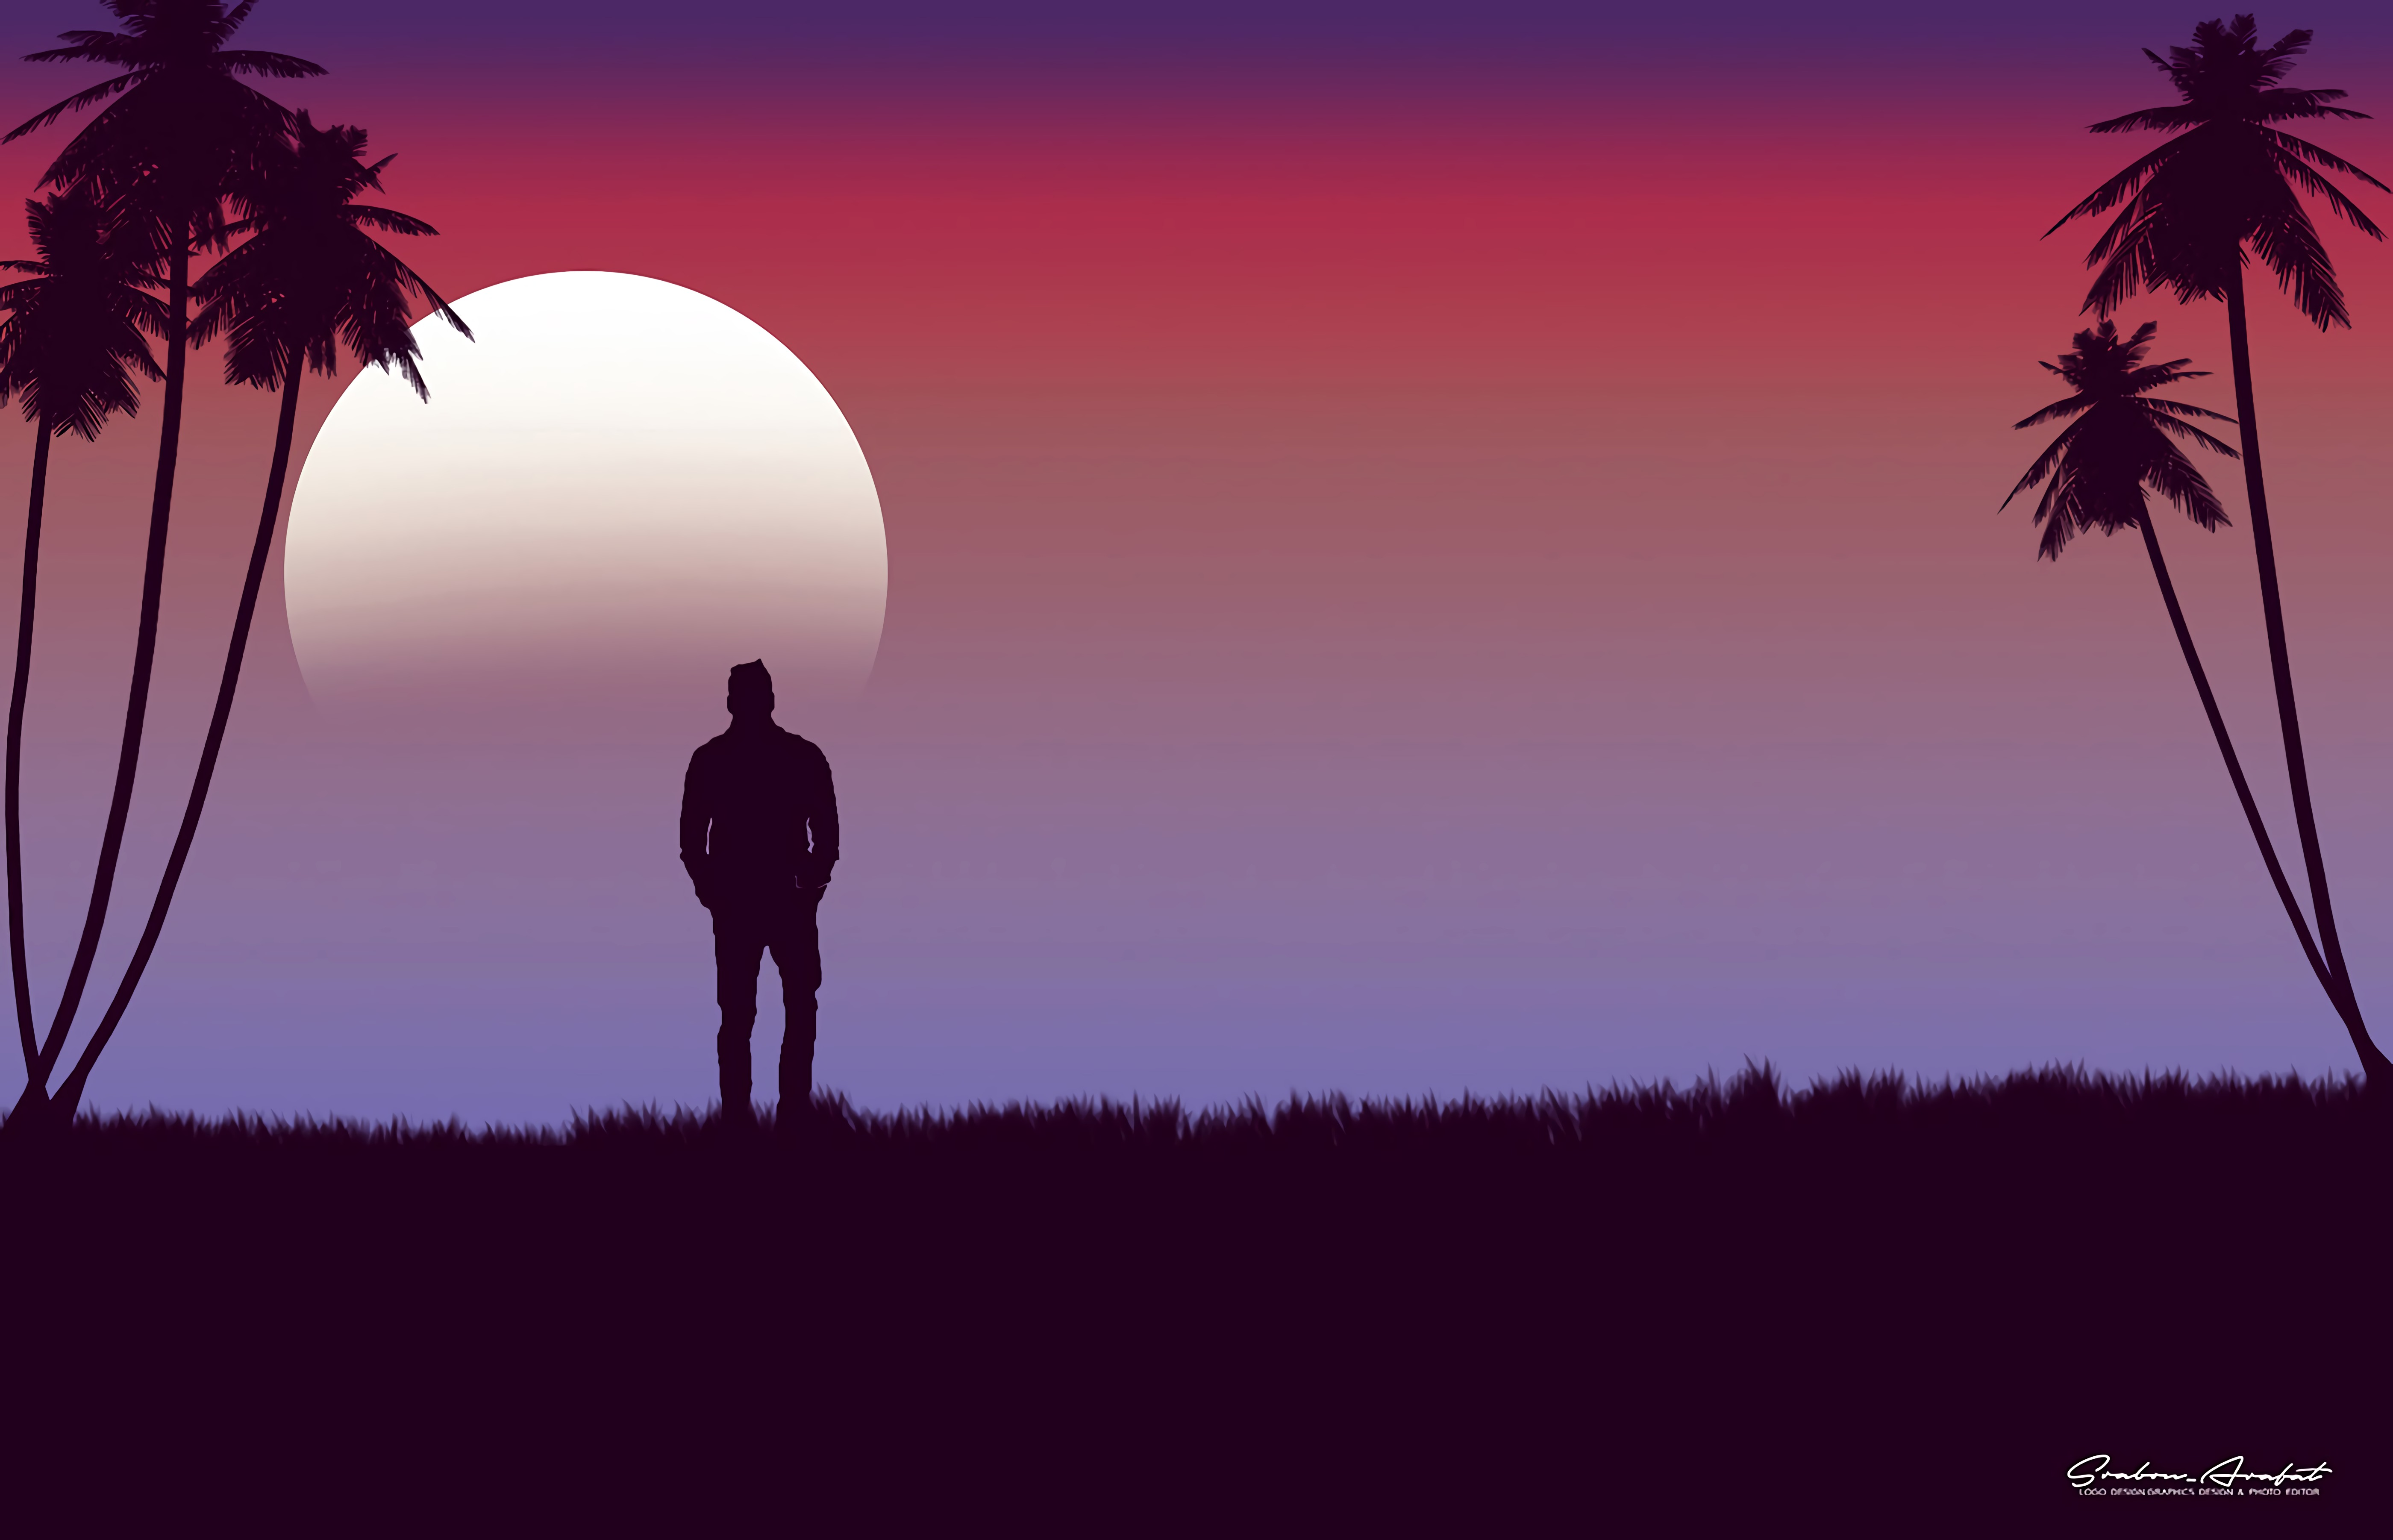 69325 free wallpaper 1125x2436 for phone, download images Moon, Vector, Palm, Loneliness, Alone, Lonely 1125x2436 for mobile